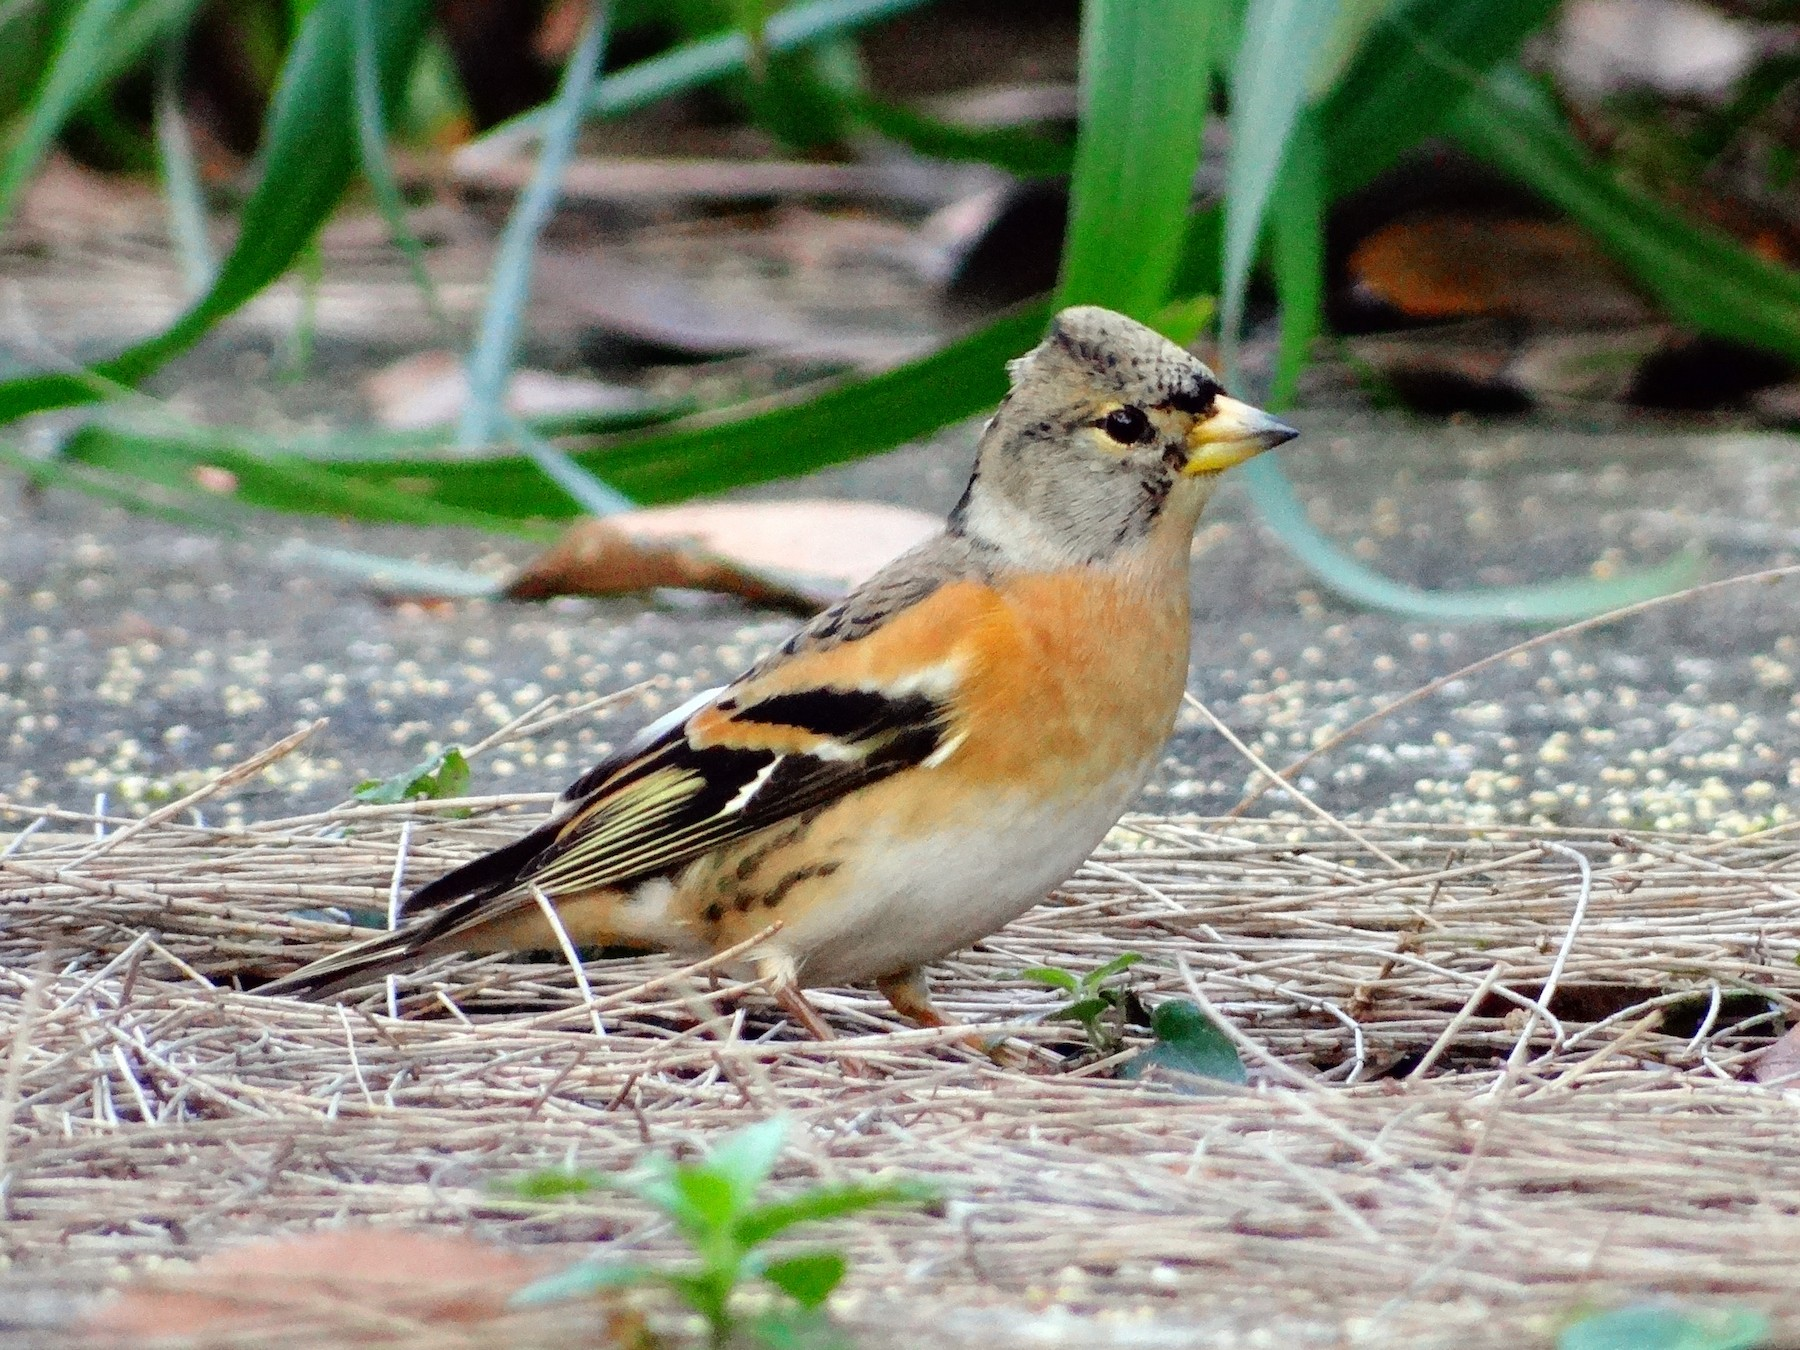 Brambling - Tom Liao